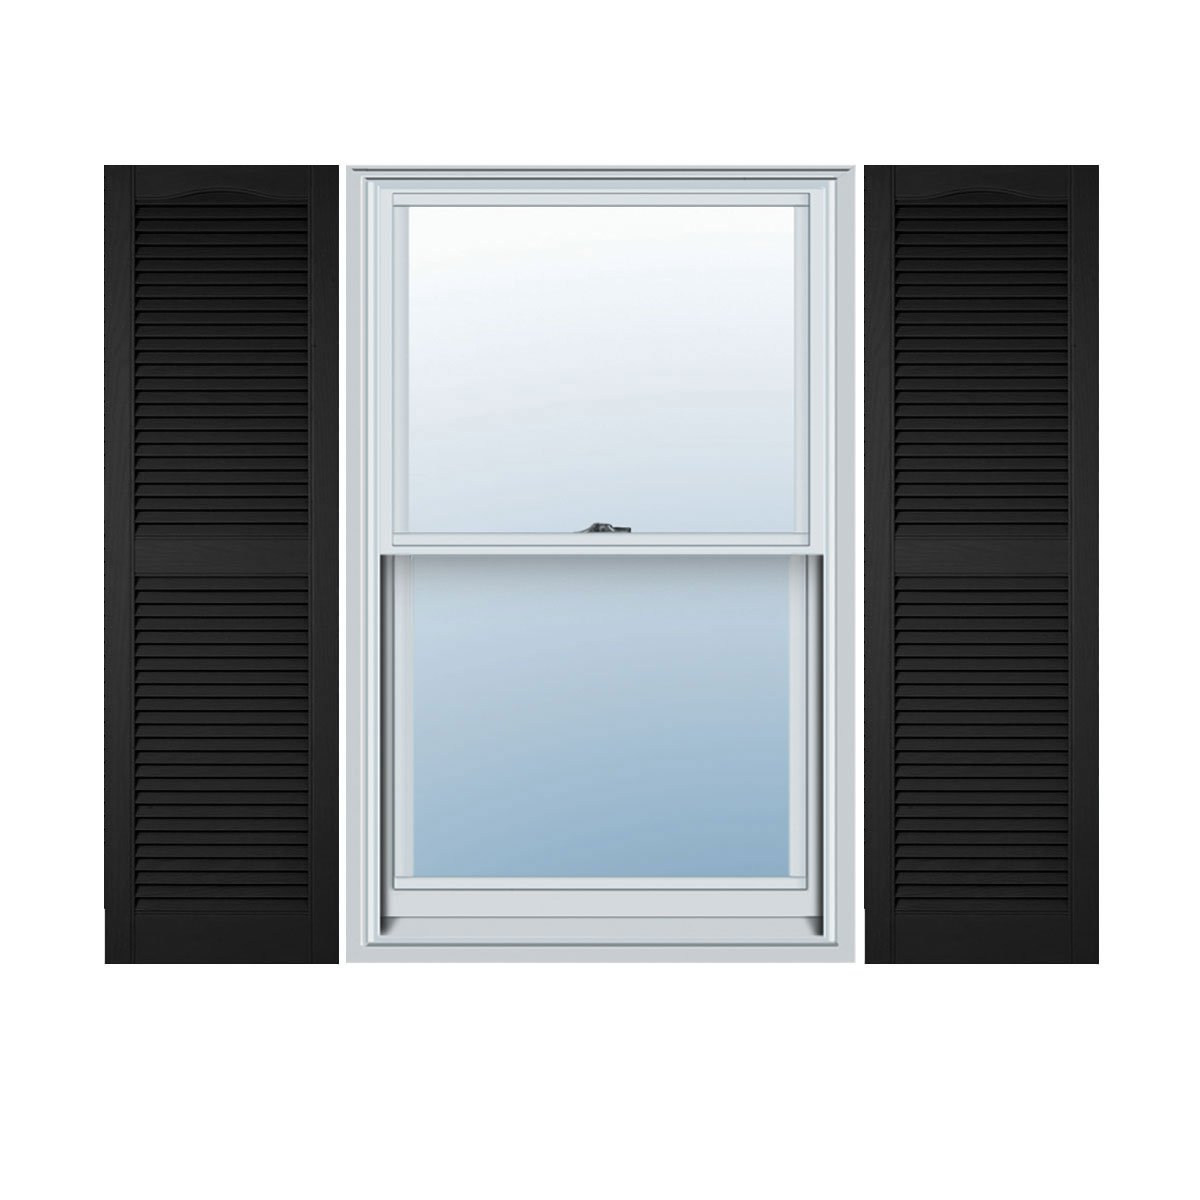 "Ekena Millwork LL1C18X05100BL Custom Cathedral Top Center Mullion, Open LouverShutter (Per Pair)18""W x 51""HBlack"